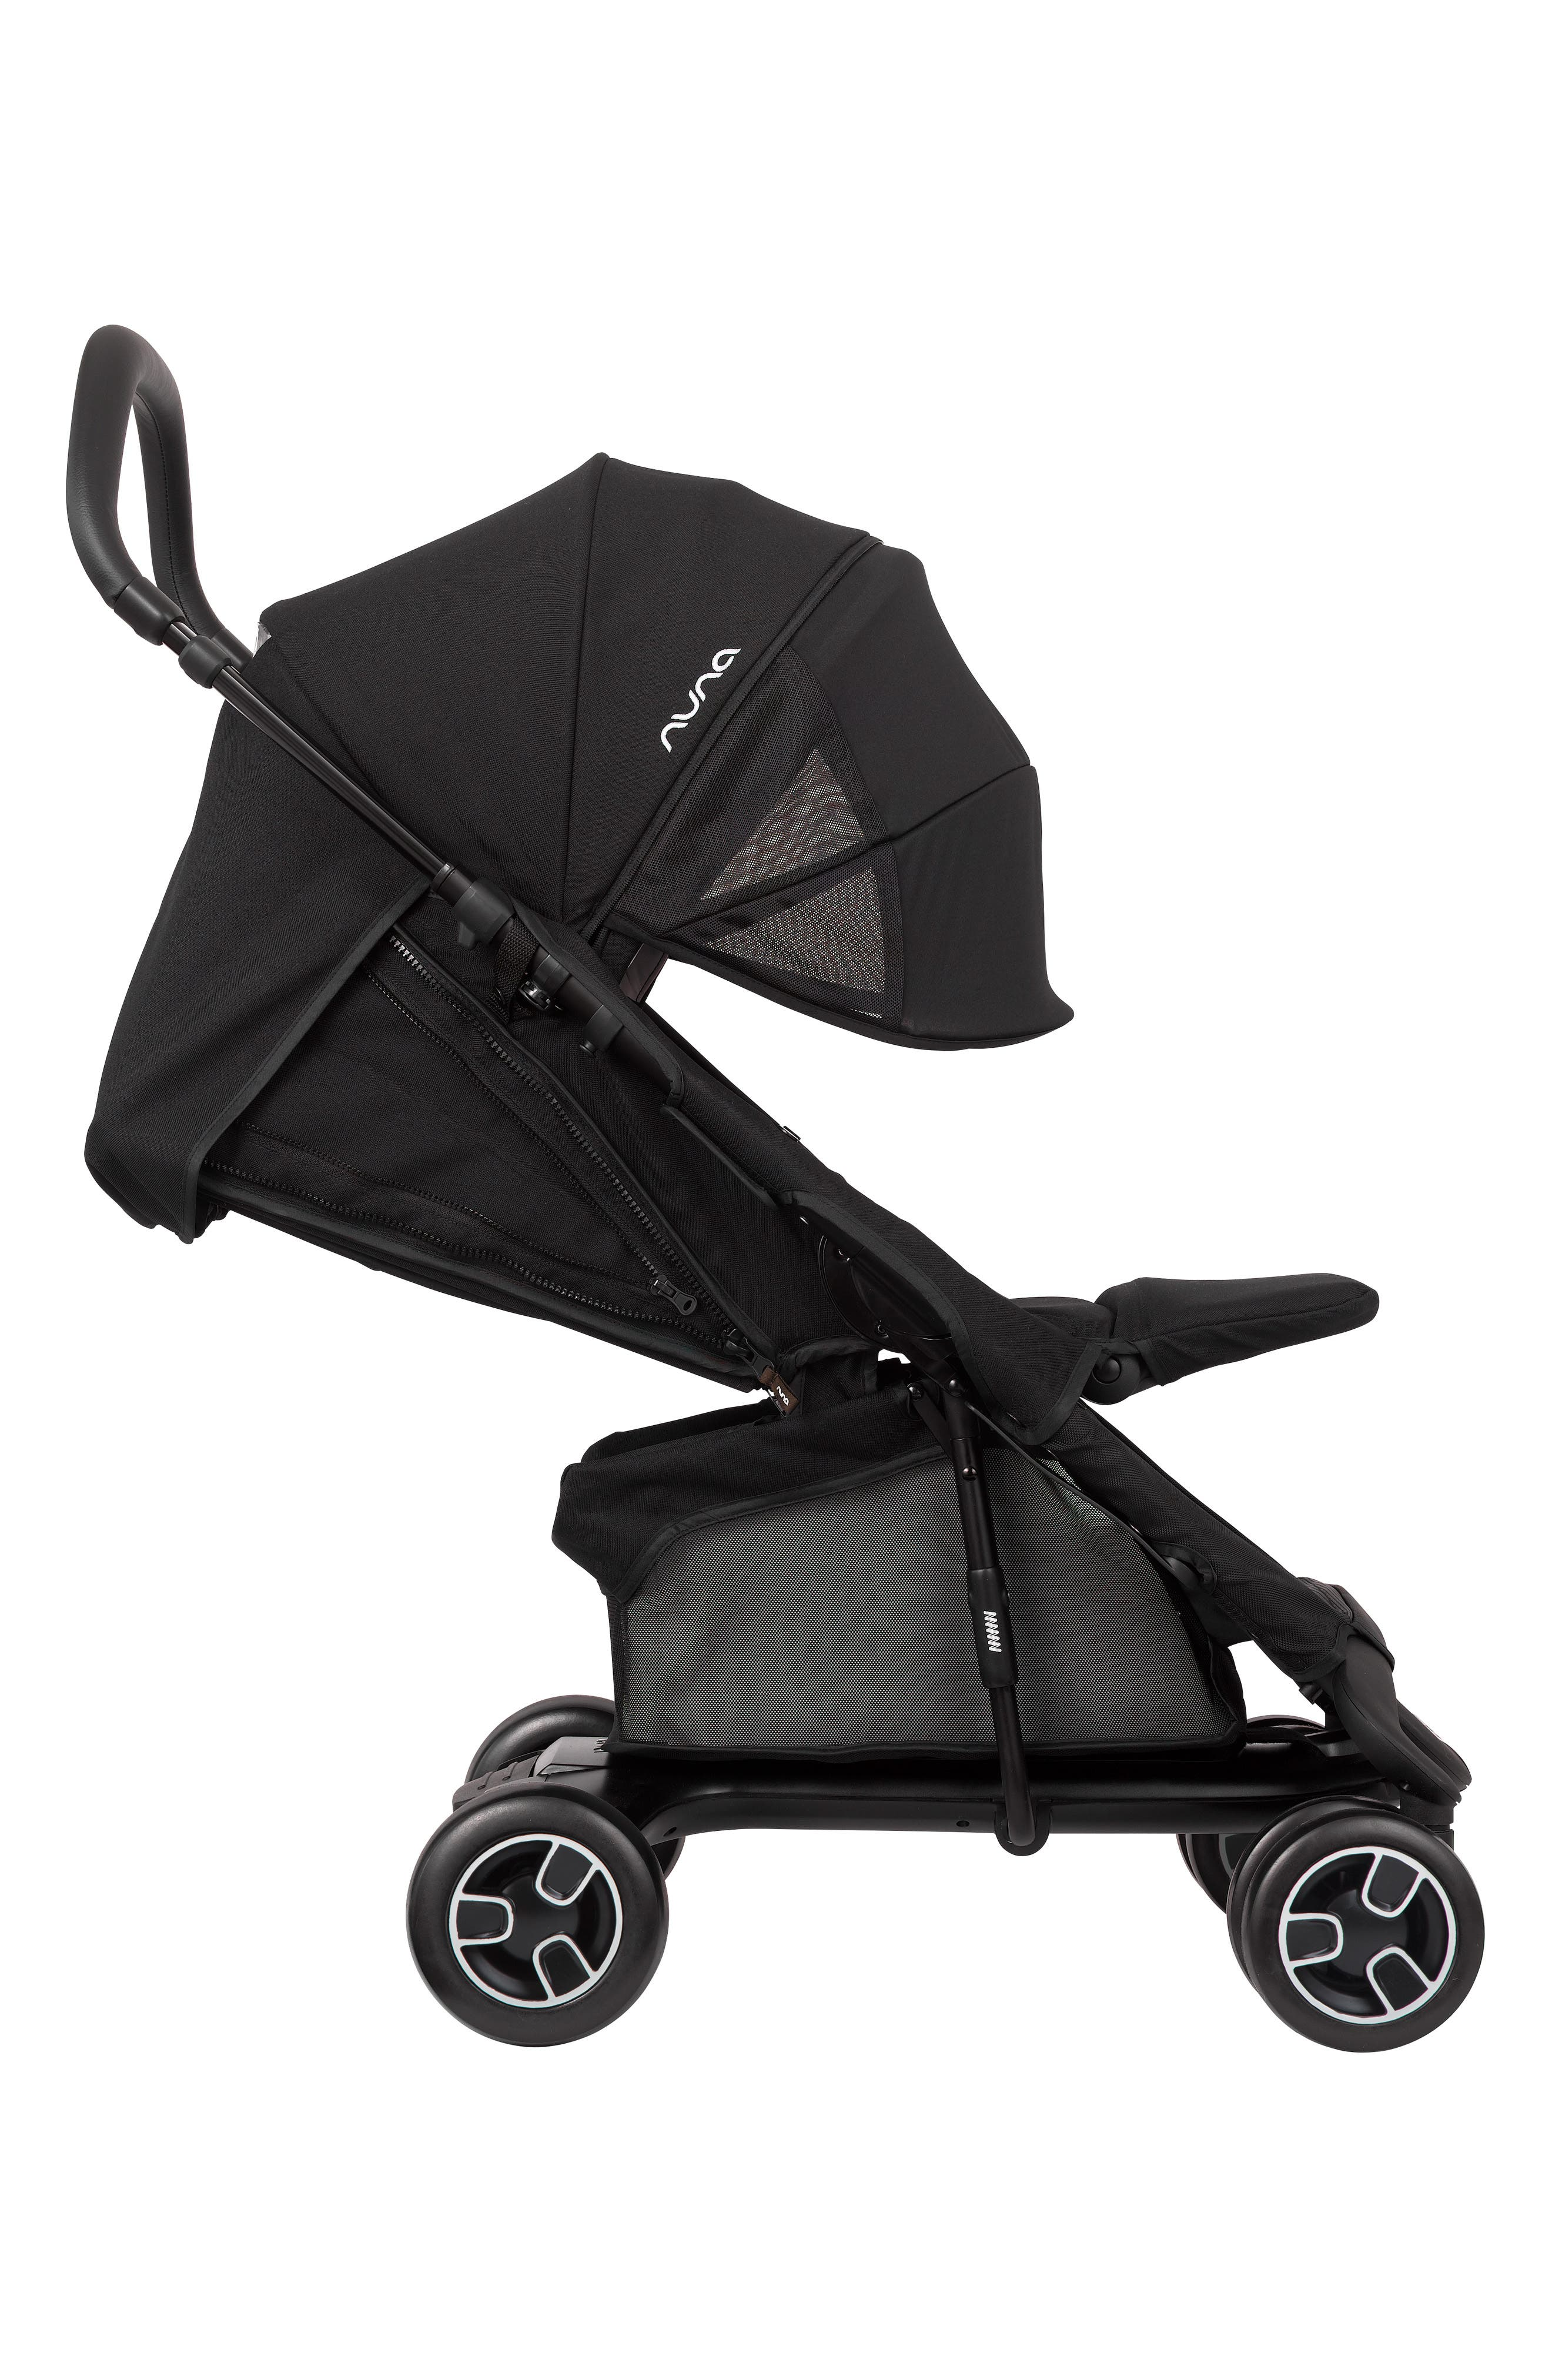 PEPP<sup>™</sup> Next Stroller,                             Alternate thumbnail 3, color,                             CAVIAR